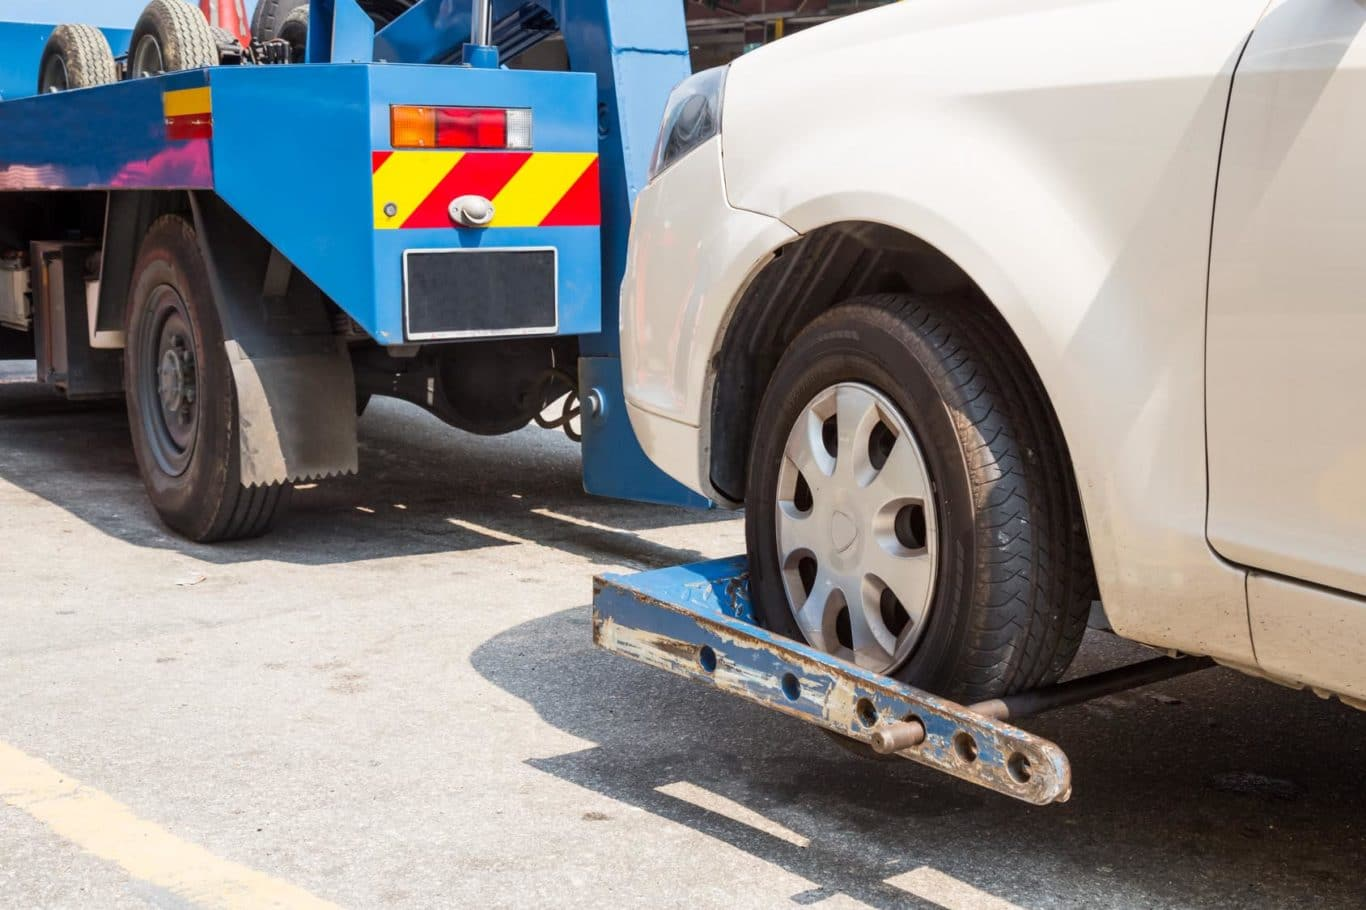 Ratoath expert Towing And Recovery Dublin services